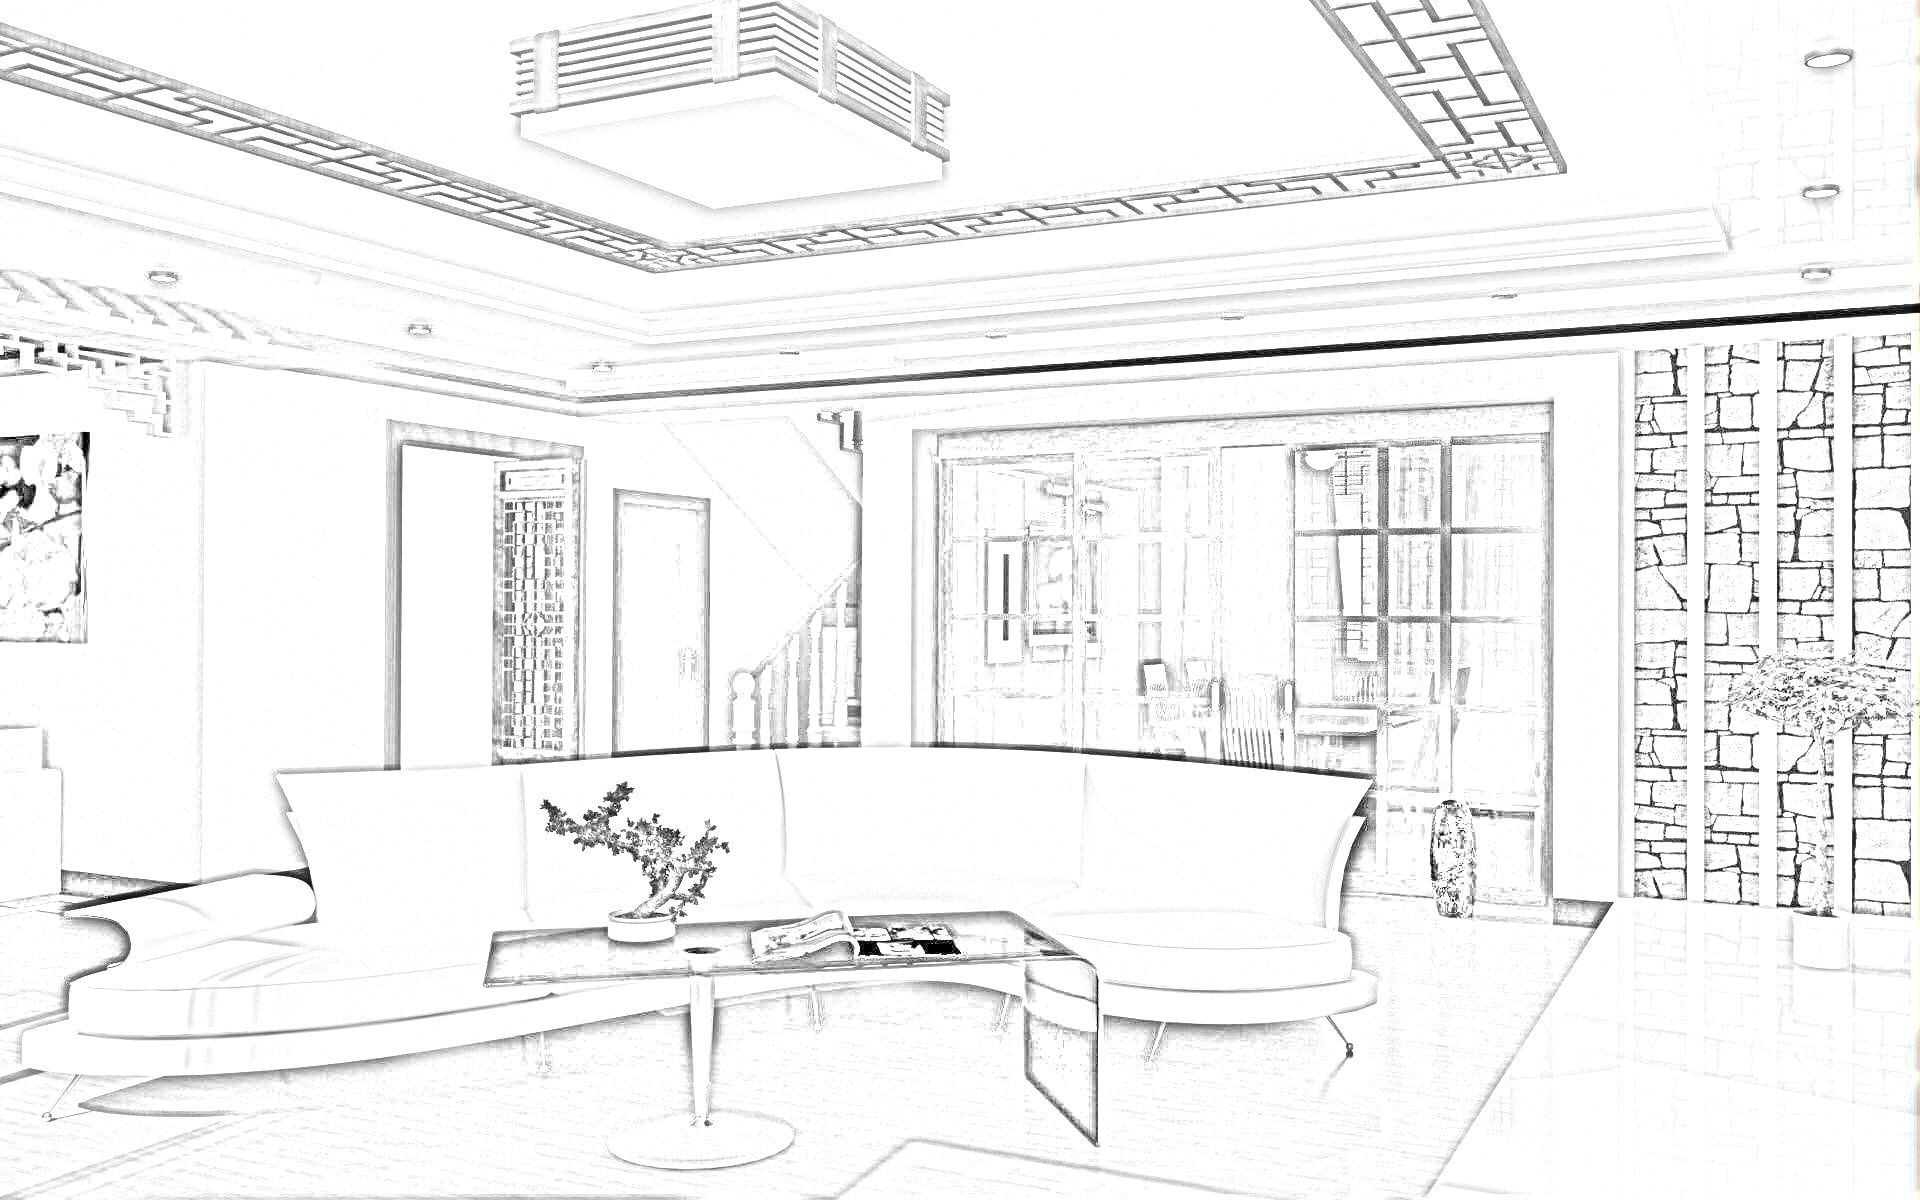 interior design sketches  google search  furniture  pinterest  - interior design sketches  google search